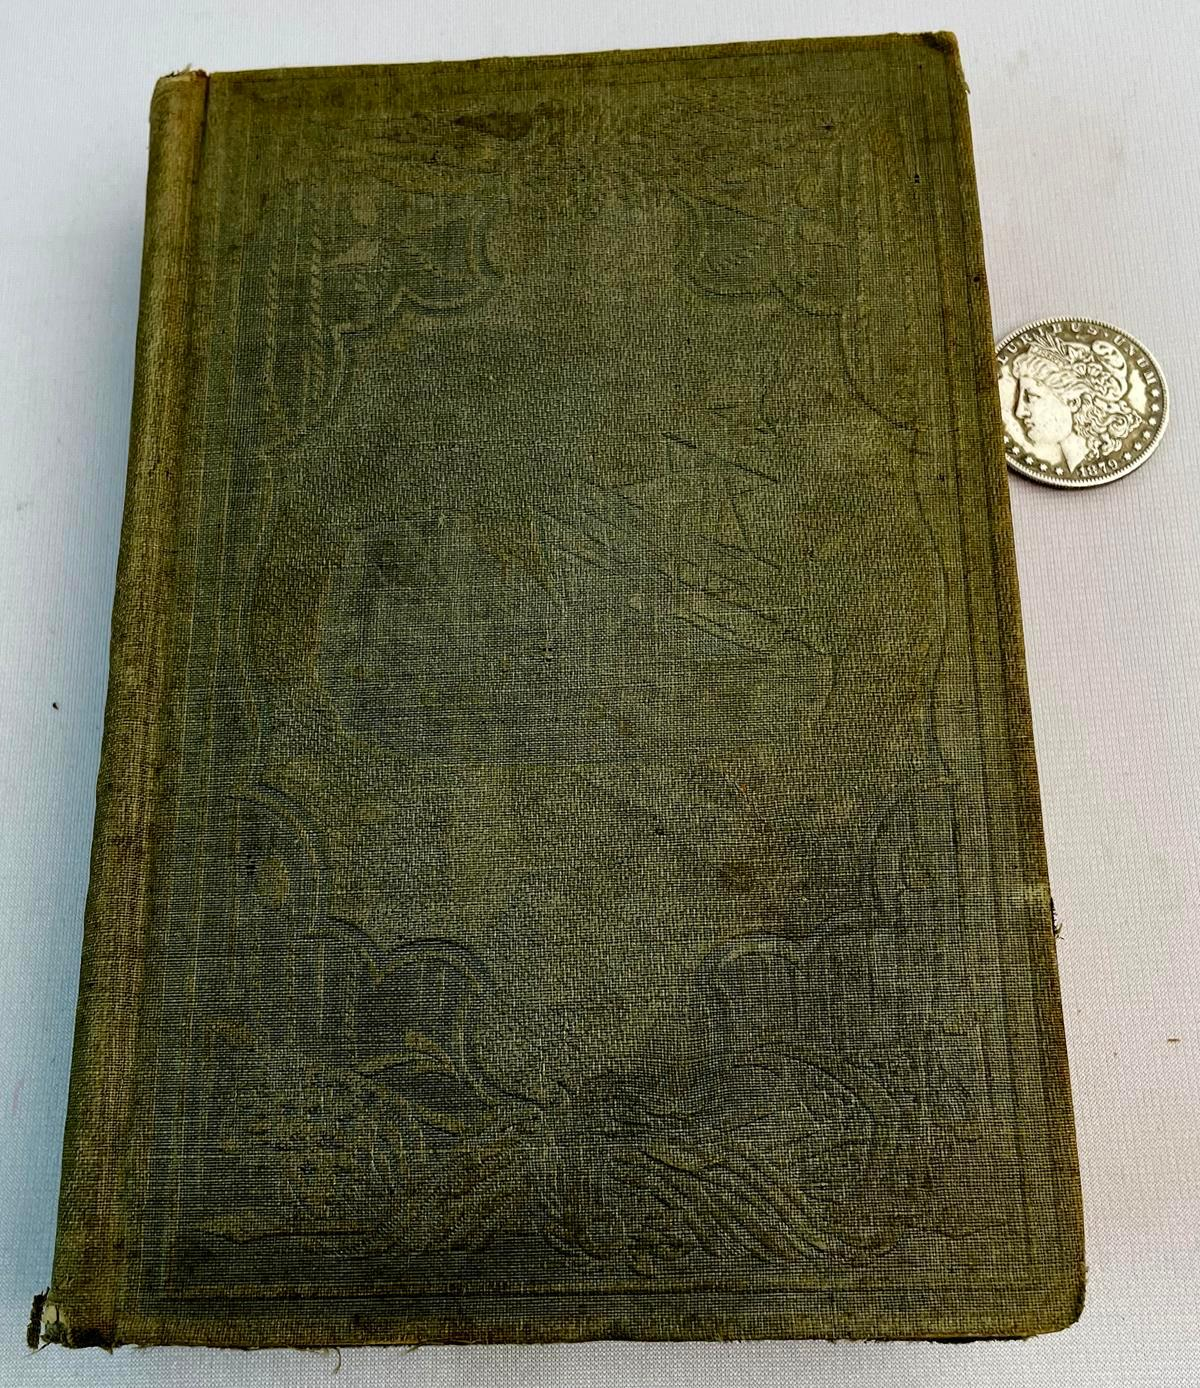 1856 Arctic Explorations: The Second Grinnell Expedition in Search of Sir John Franklin by Elisha Kent Kane, MD Vol. II Illustrated FIRST EDITION